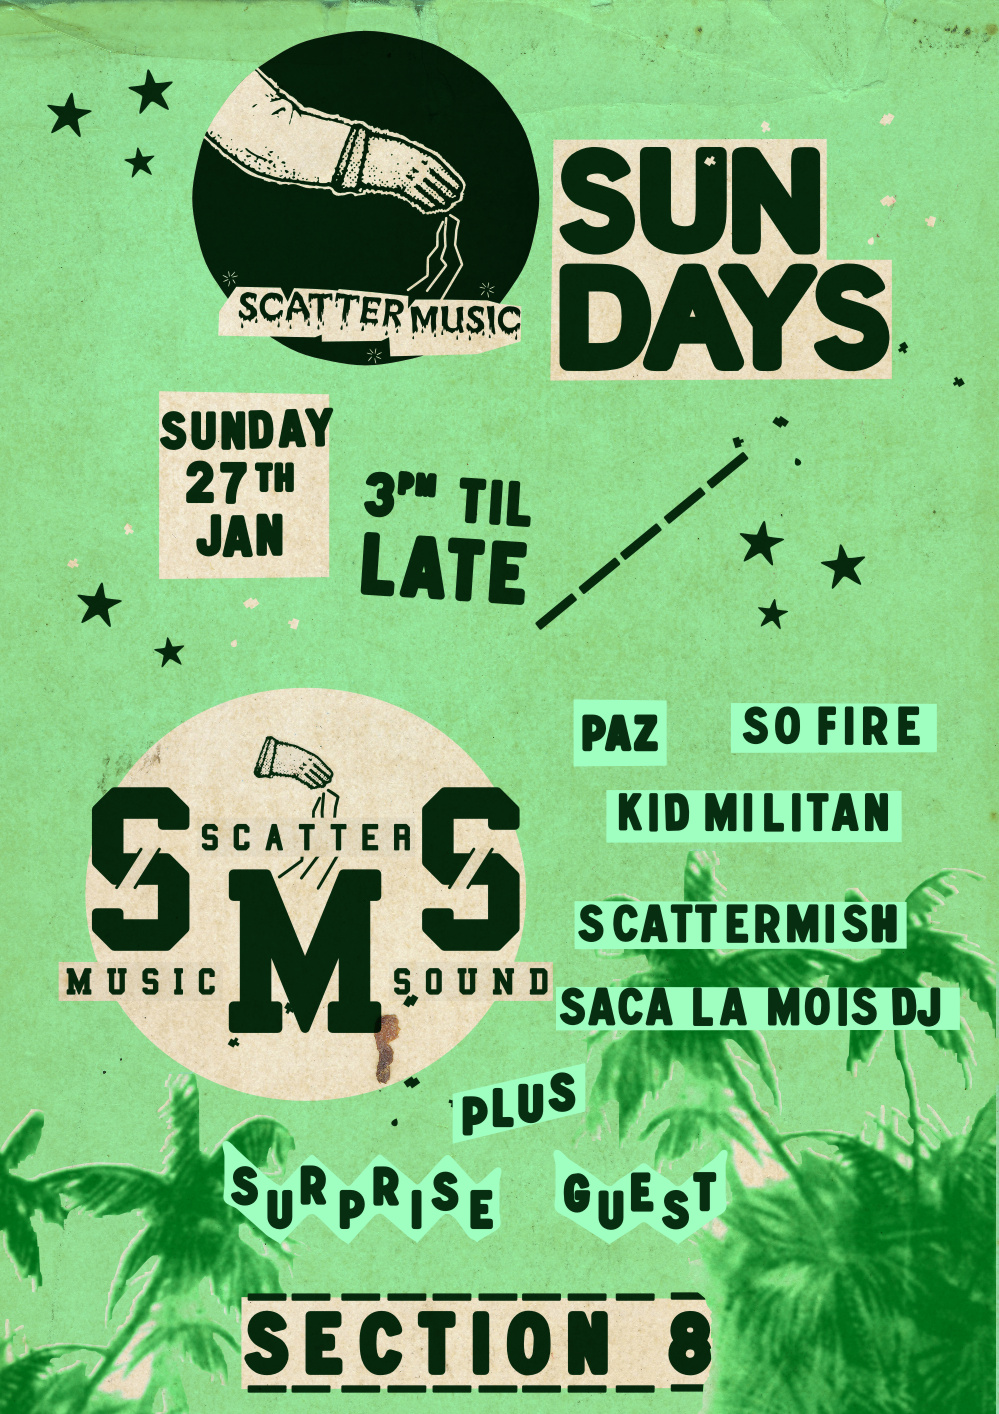 Scattermusic Sundays - January 27 2013